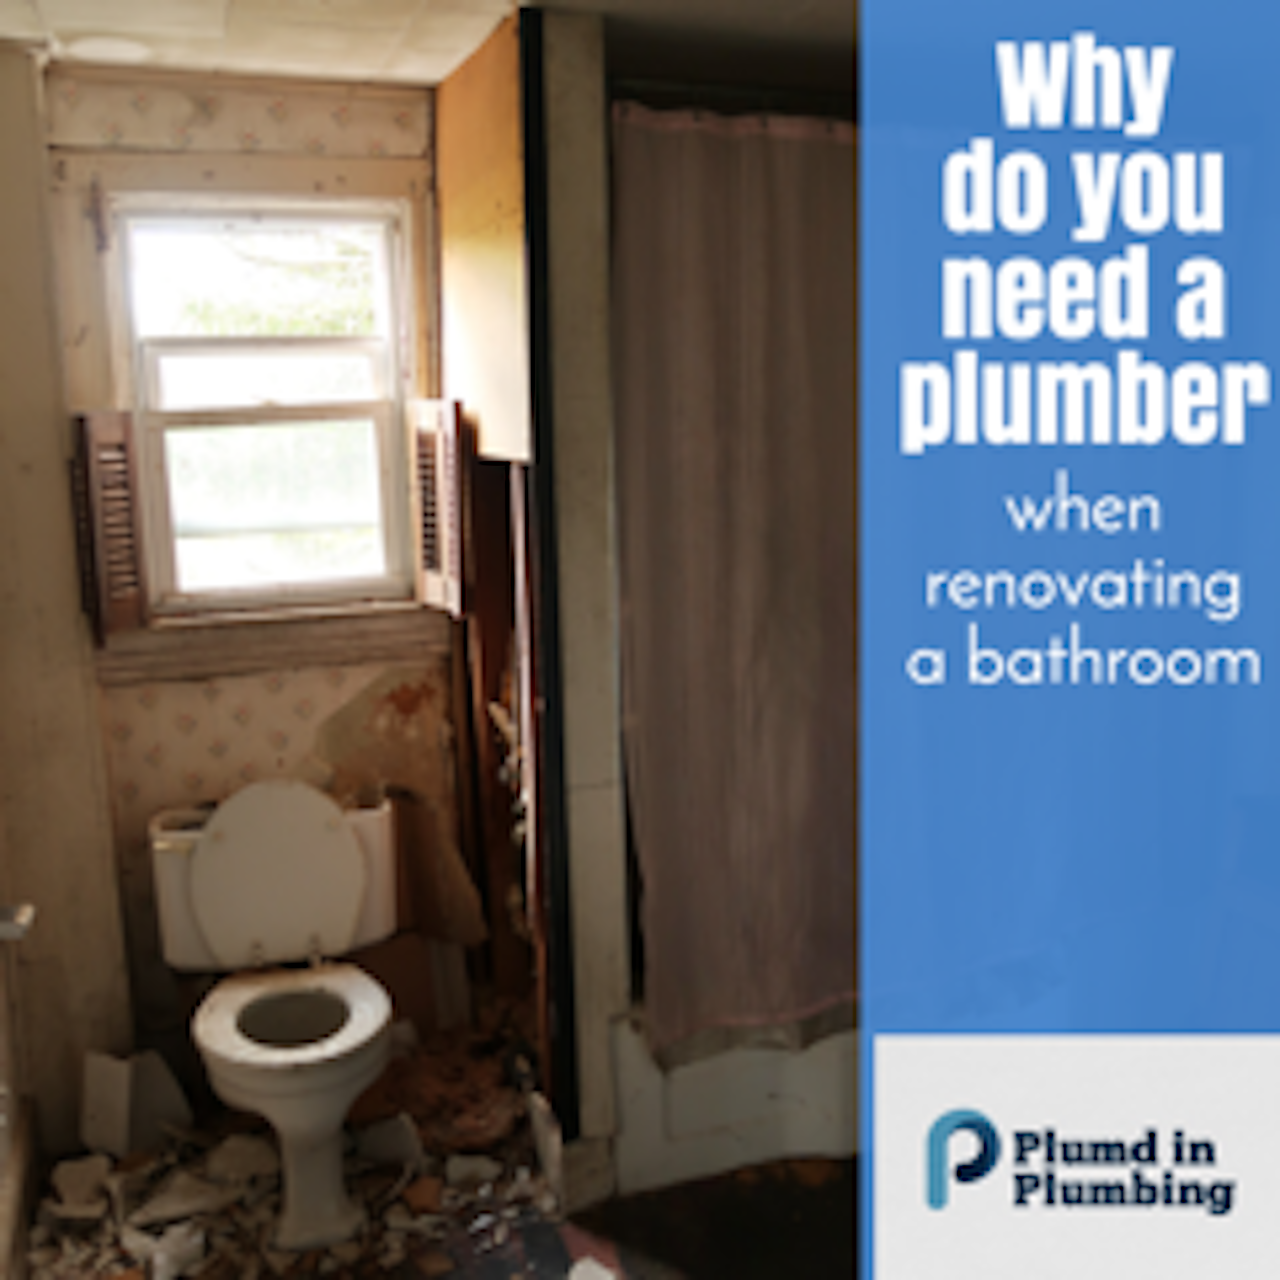 why do you need a plumber when renovating a bathroom